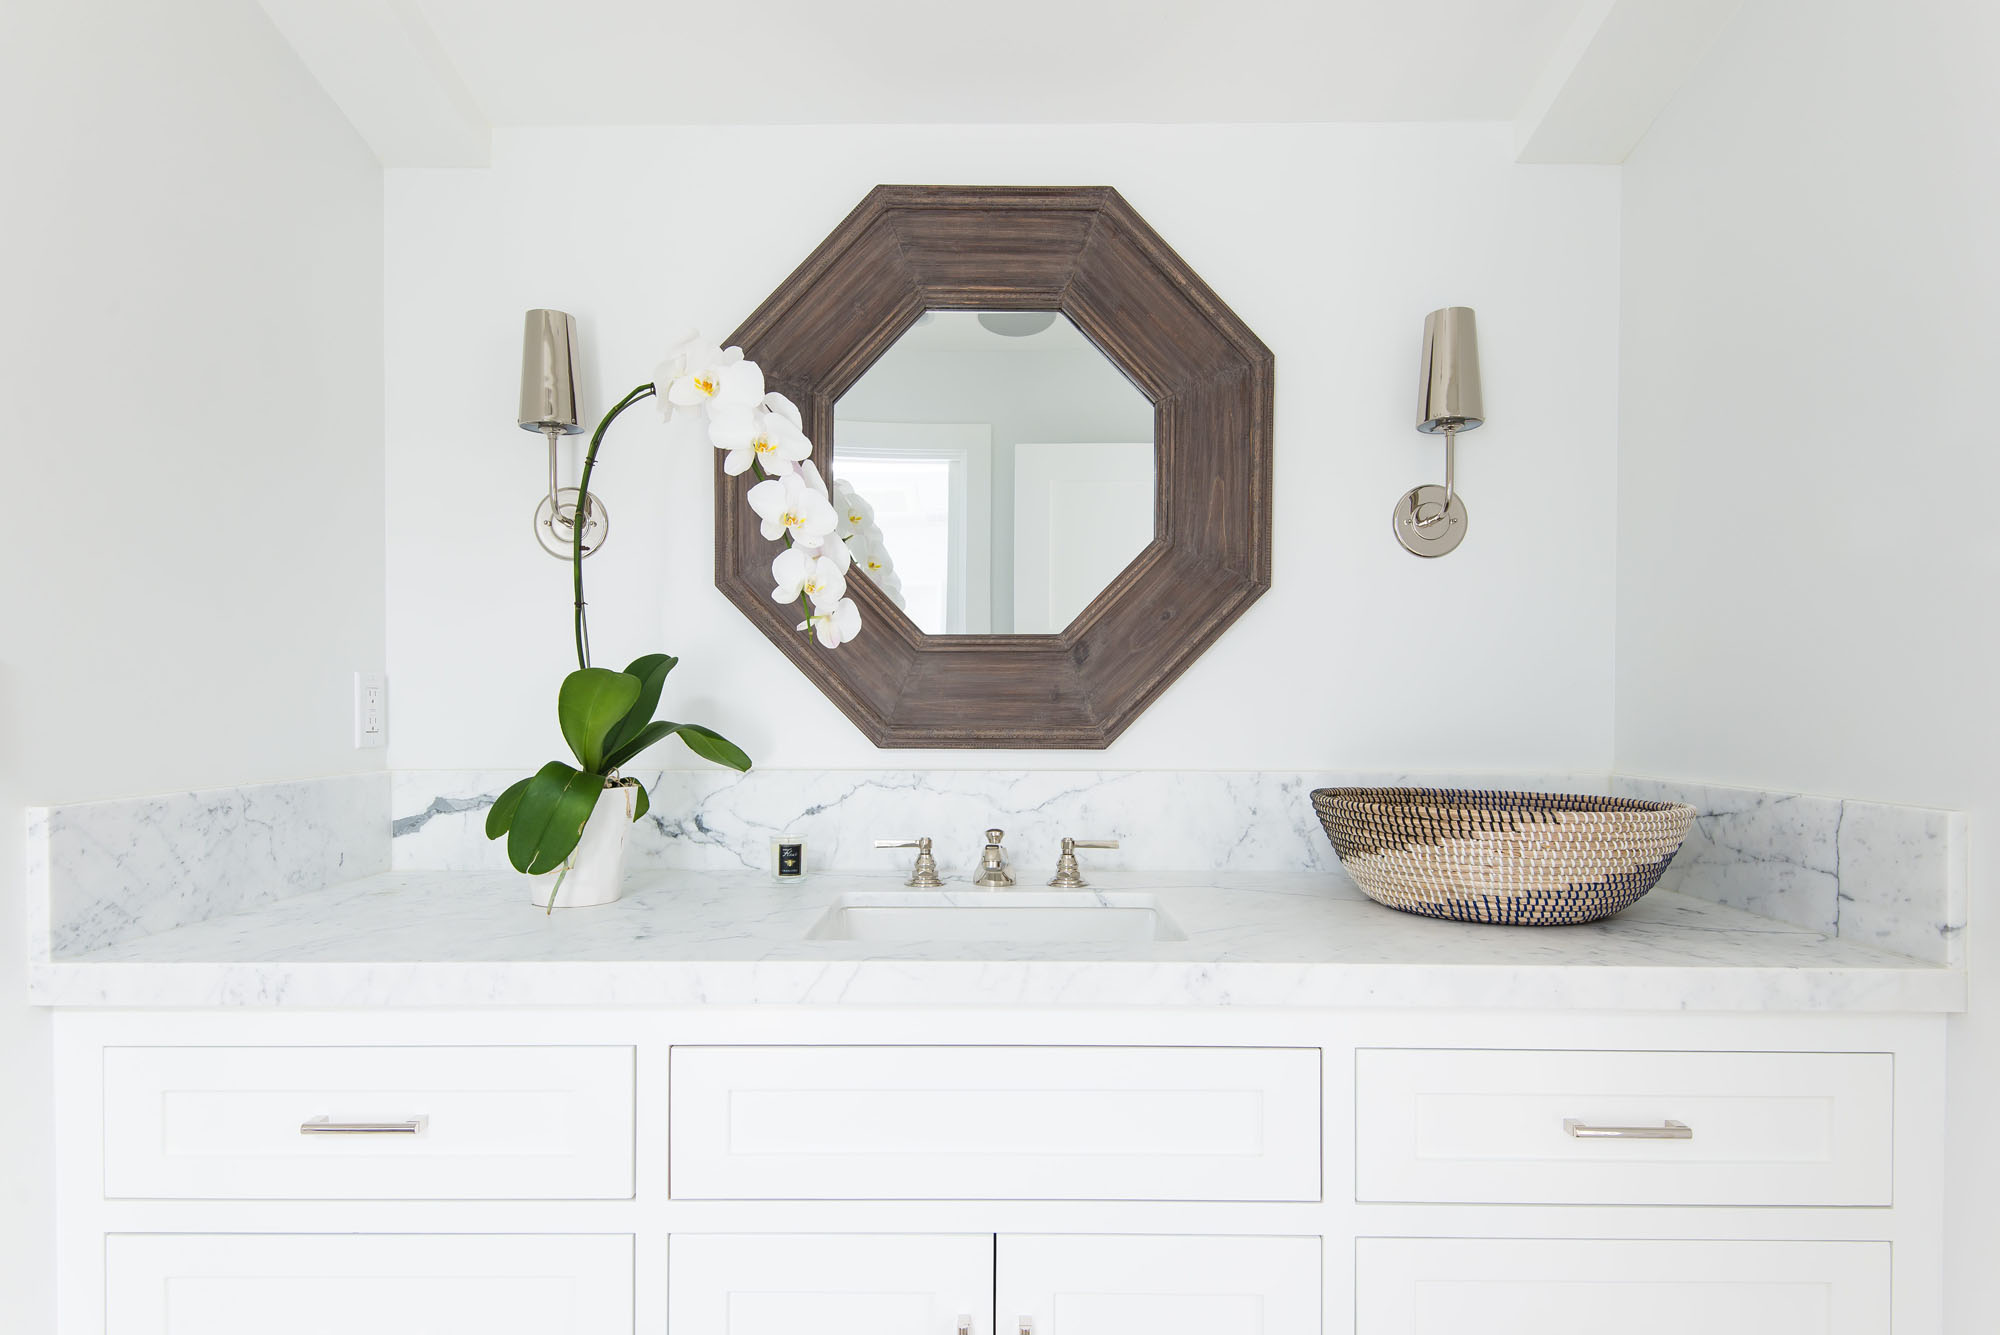 Bathroom Marble Countertops Restoration Hardware Modern Melissa Morgan Design